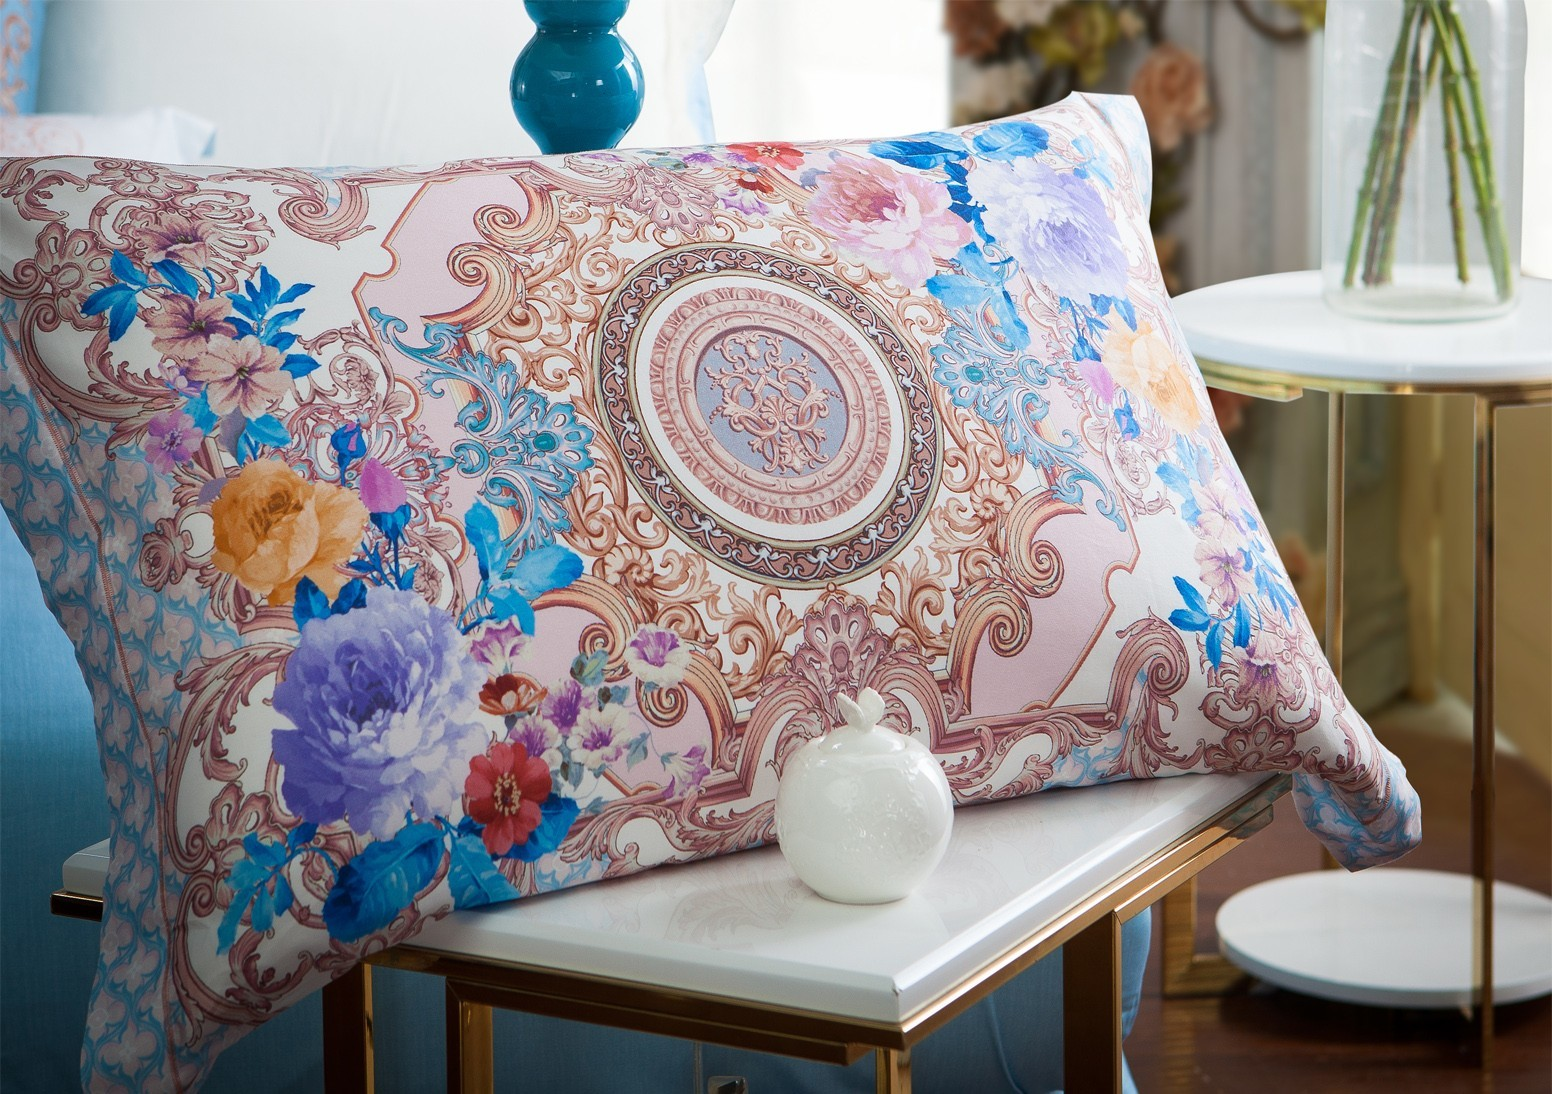 Daphne Brand fashionable printed embroidery Cotton Bedding Sets